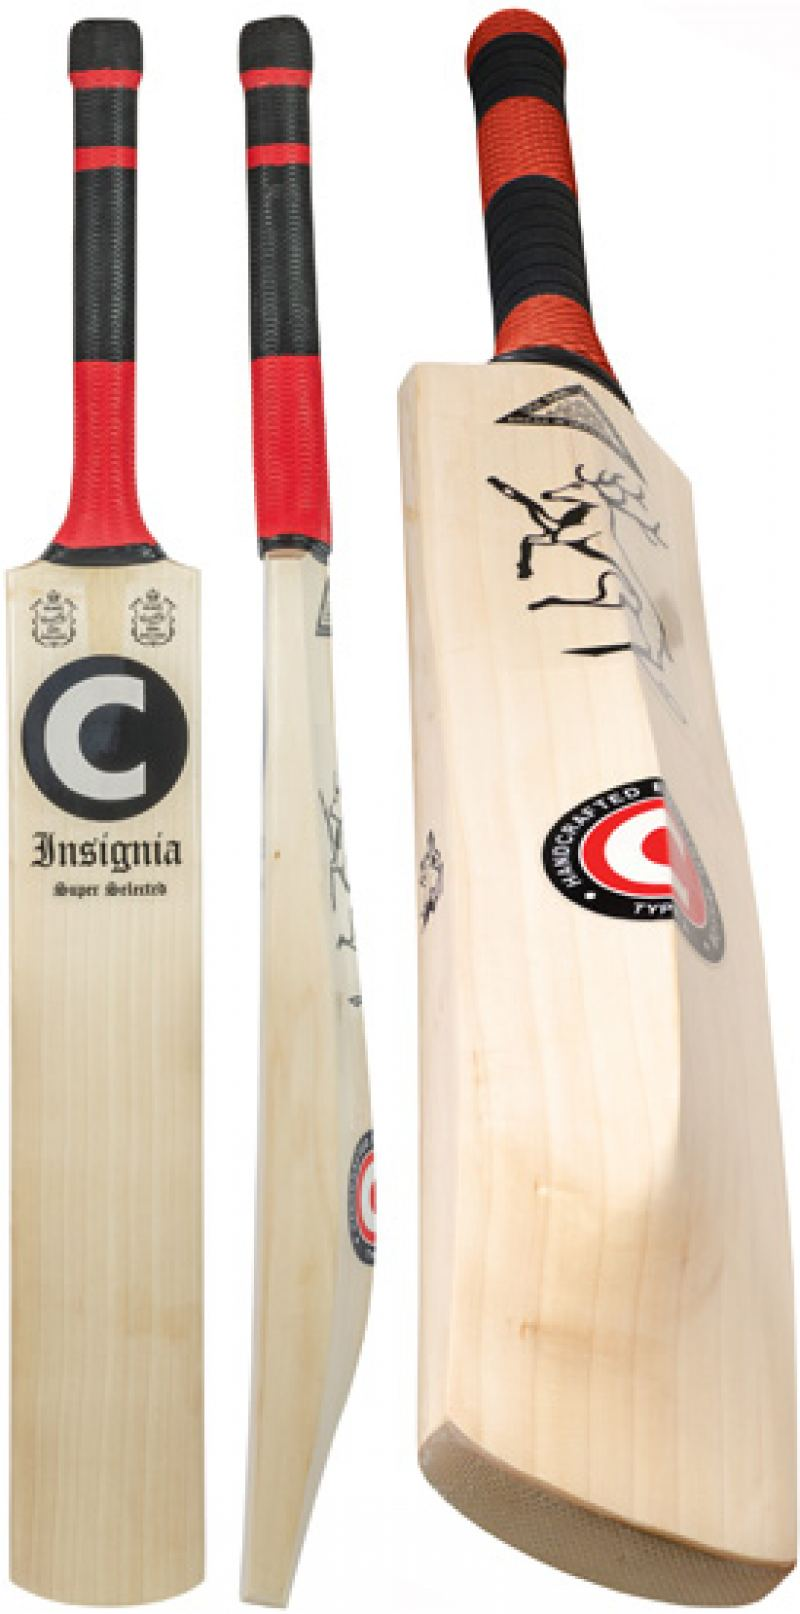 Hunts County Insignia Super Select Cricket Bat